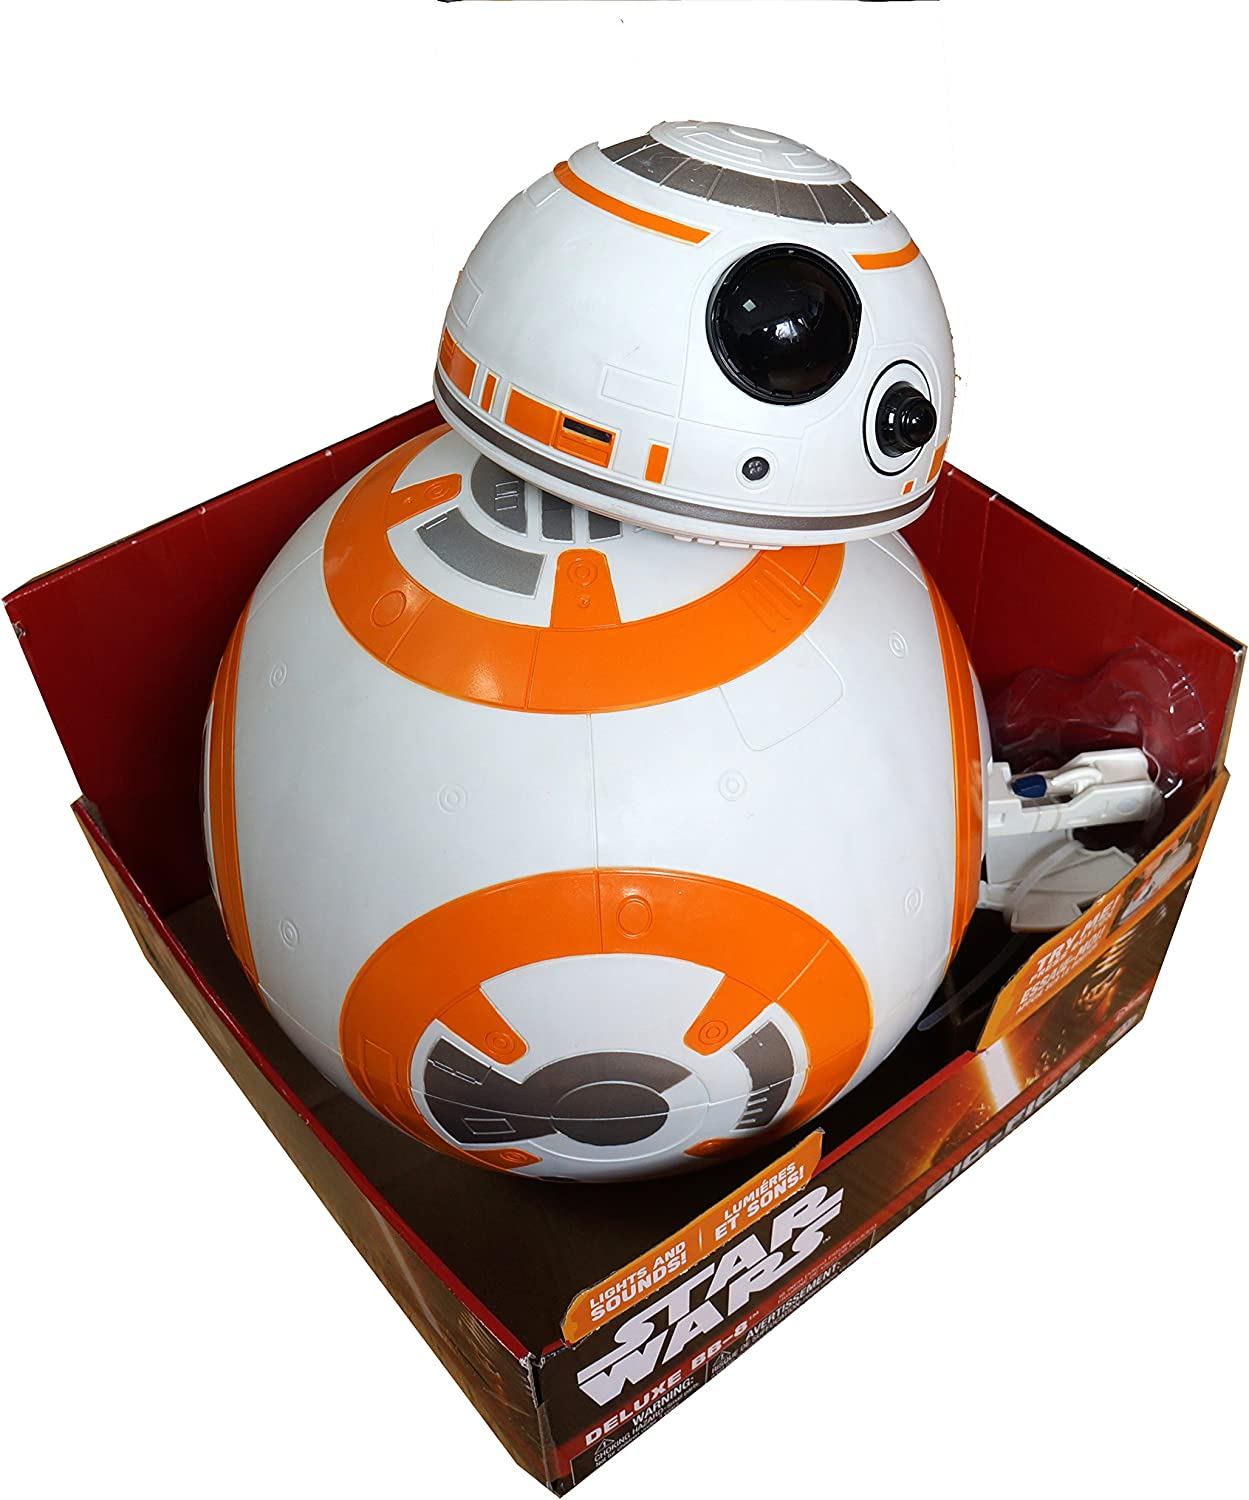 Star Wars The Force Awakens 18  Electronic Talking BB8 BigFigs Action Figure Brand New & Factory Sealed